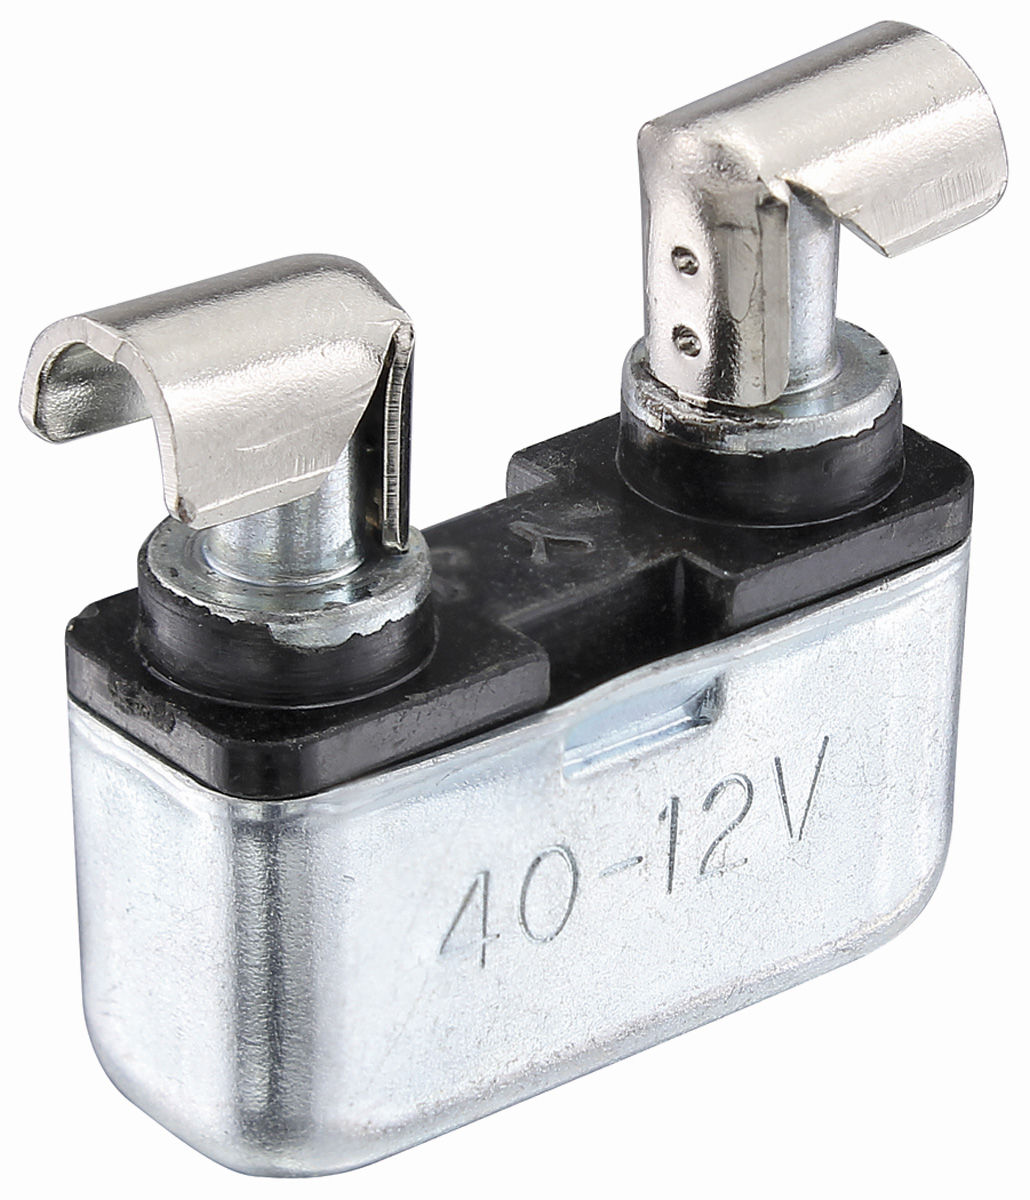 hight resolution of 1972 1978 eldorado power accessory circuit breaker 40 amp fuse block mounted